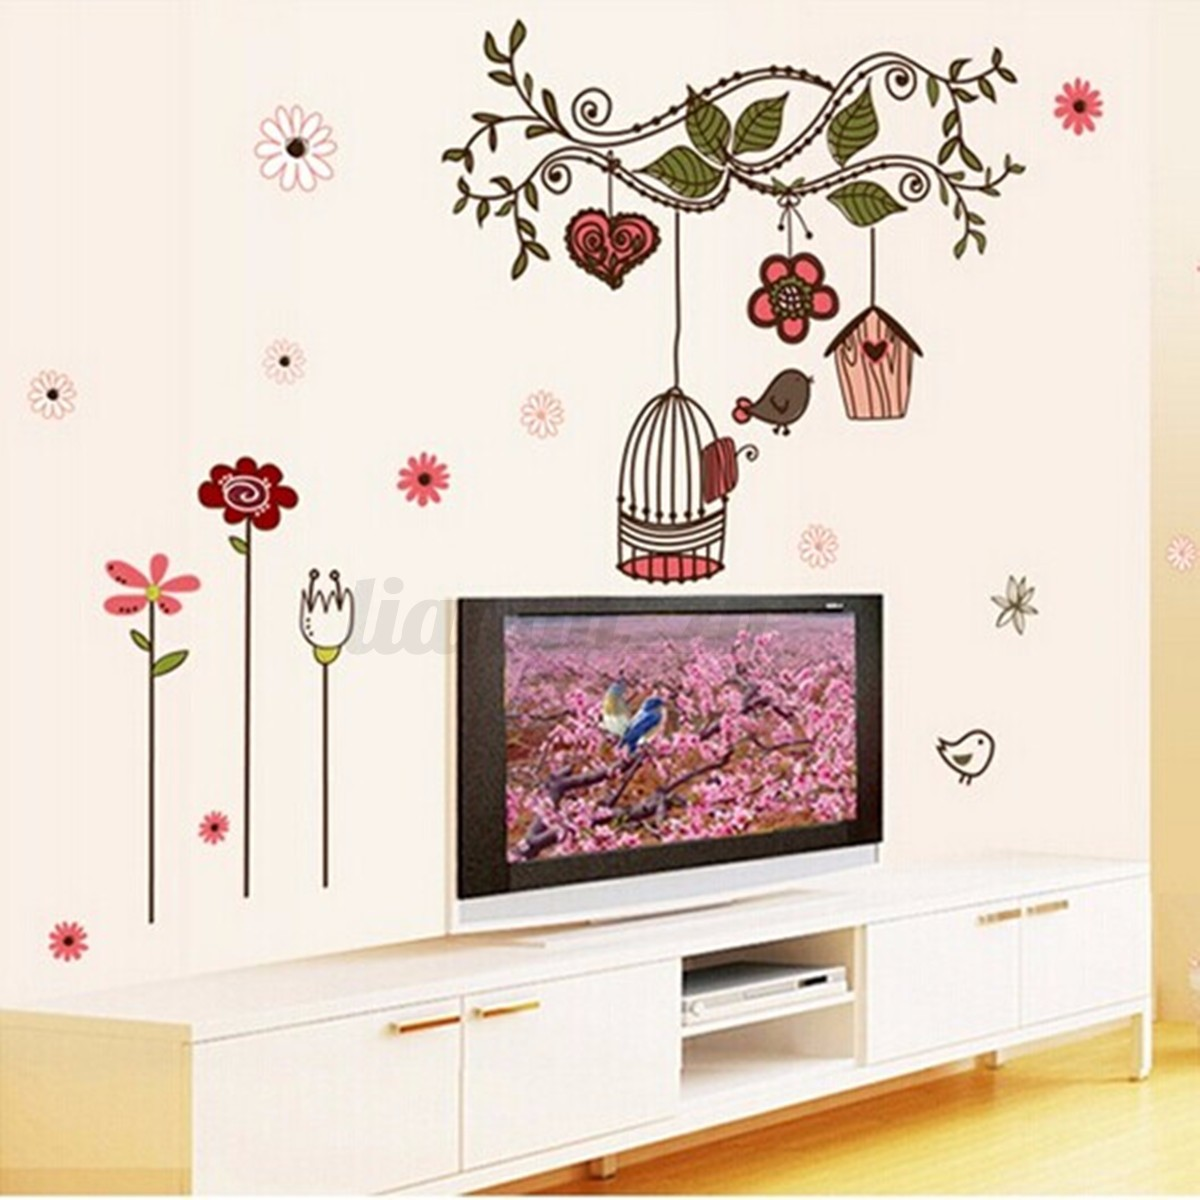 Sticker mural fleur branche cage oiseau mur d coration for Decoration autocollant mural